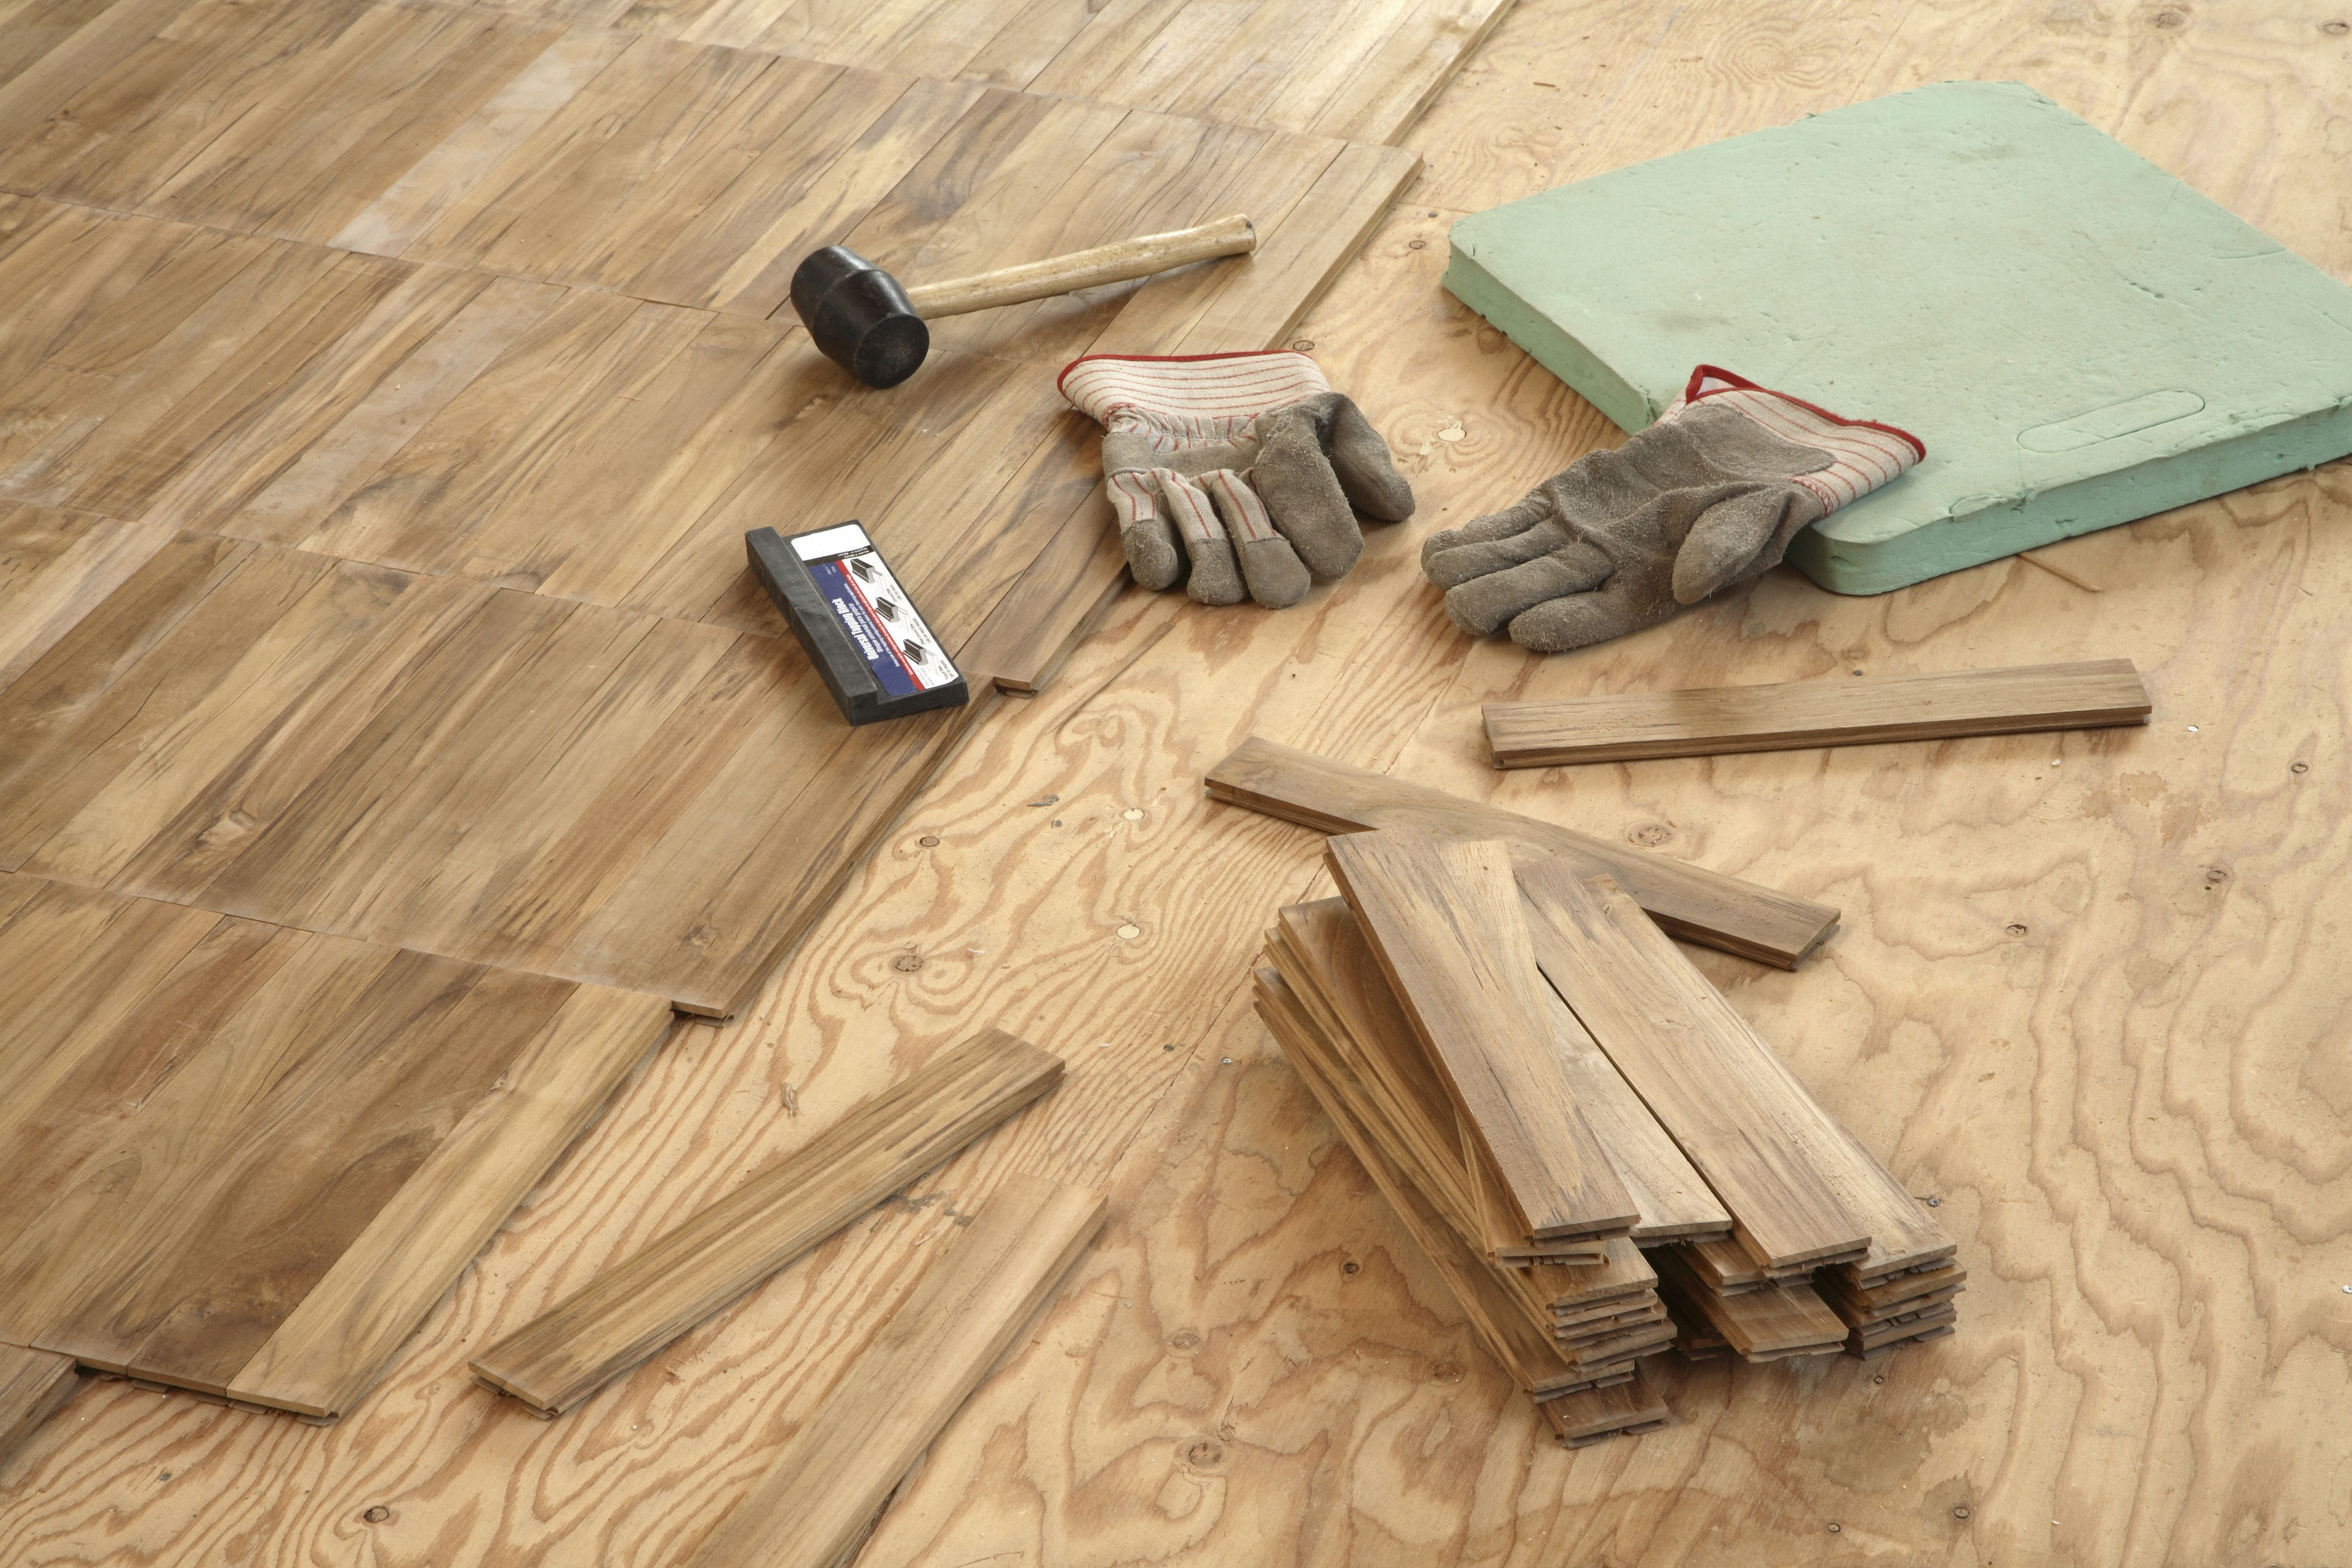 birch hardwood flooring home depot of plywood underlayment pros and cons types and brands inside plywoodunderlaymentunderwoodflooring 5ac24fbcae9ab8003781af25